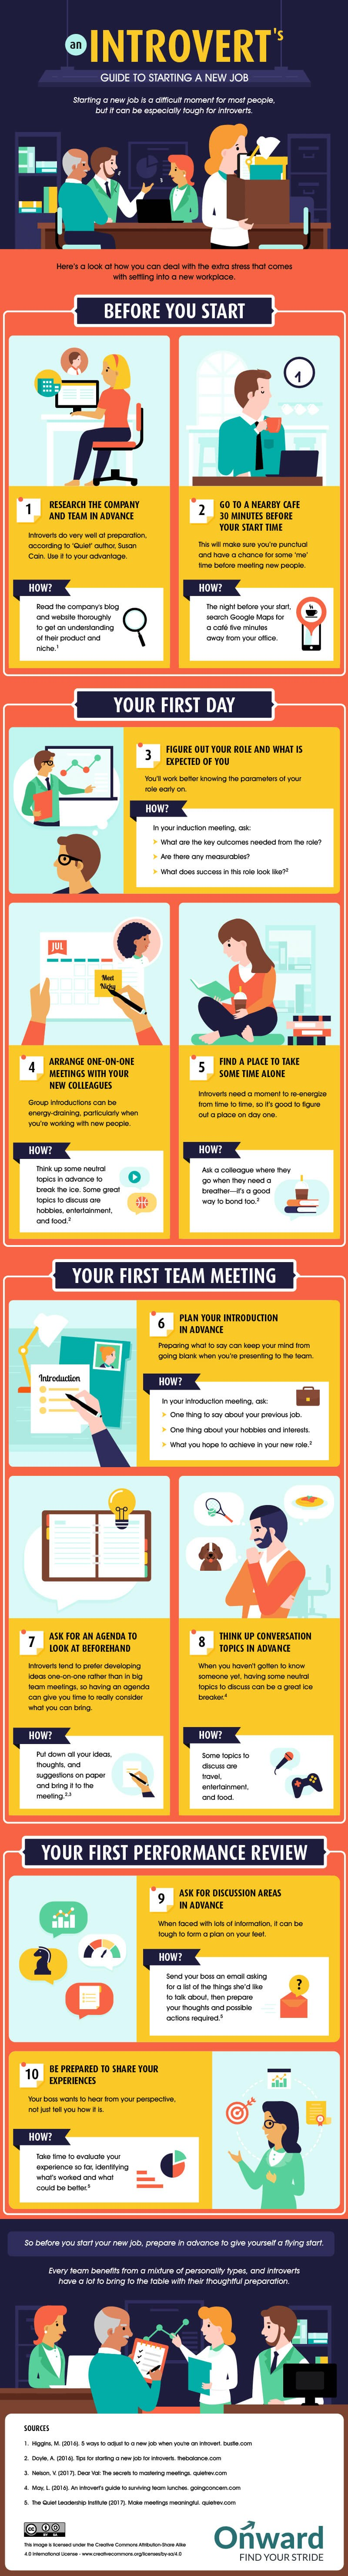 An Introvert's Guide to Starting A New Job - #infographic